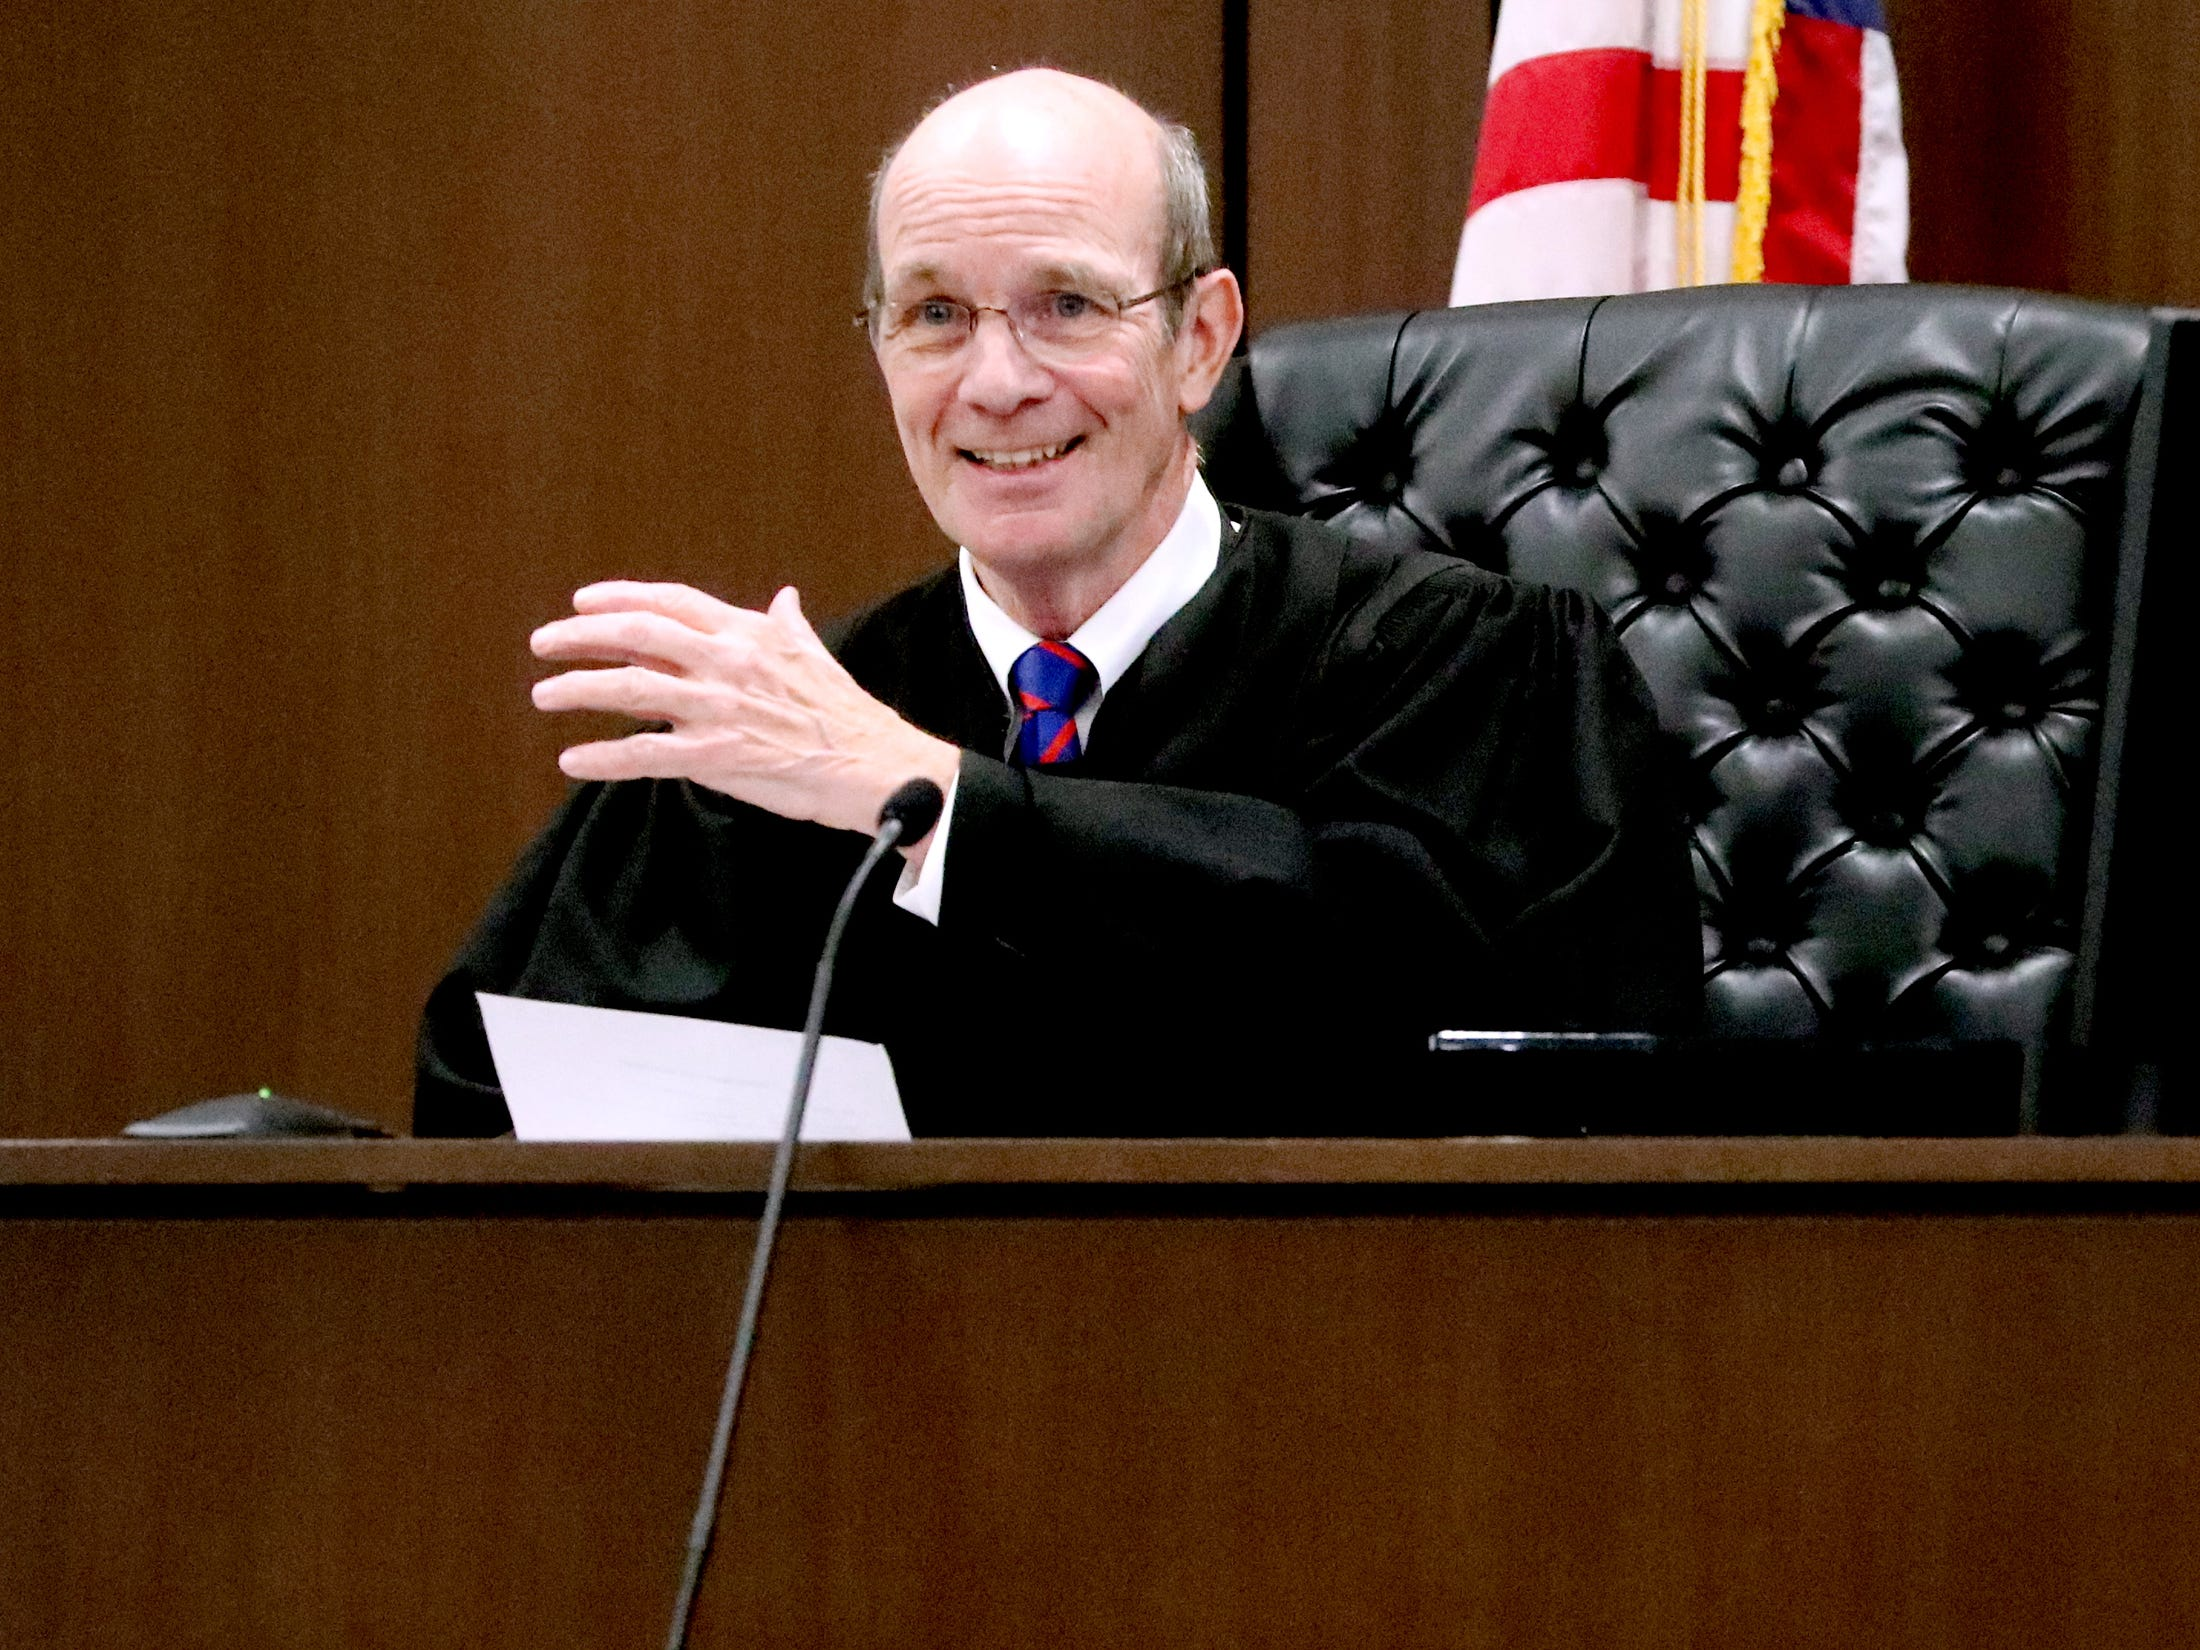 Judge Ben Hall McFarlin Jr. fills in for Judge Barry Tidwell during Mental Health court. McFarlin claps for and then asks the participants to come up and get a reward if they have done well with their progress on Friday, Feb. 22, 2019.  After the docket a two year anniversary celebration was held to celebrate the success of the Mental Health Court program.